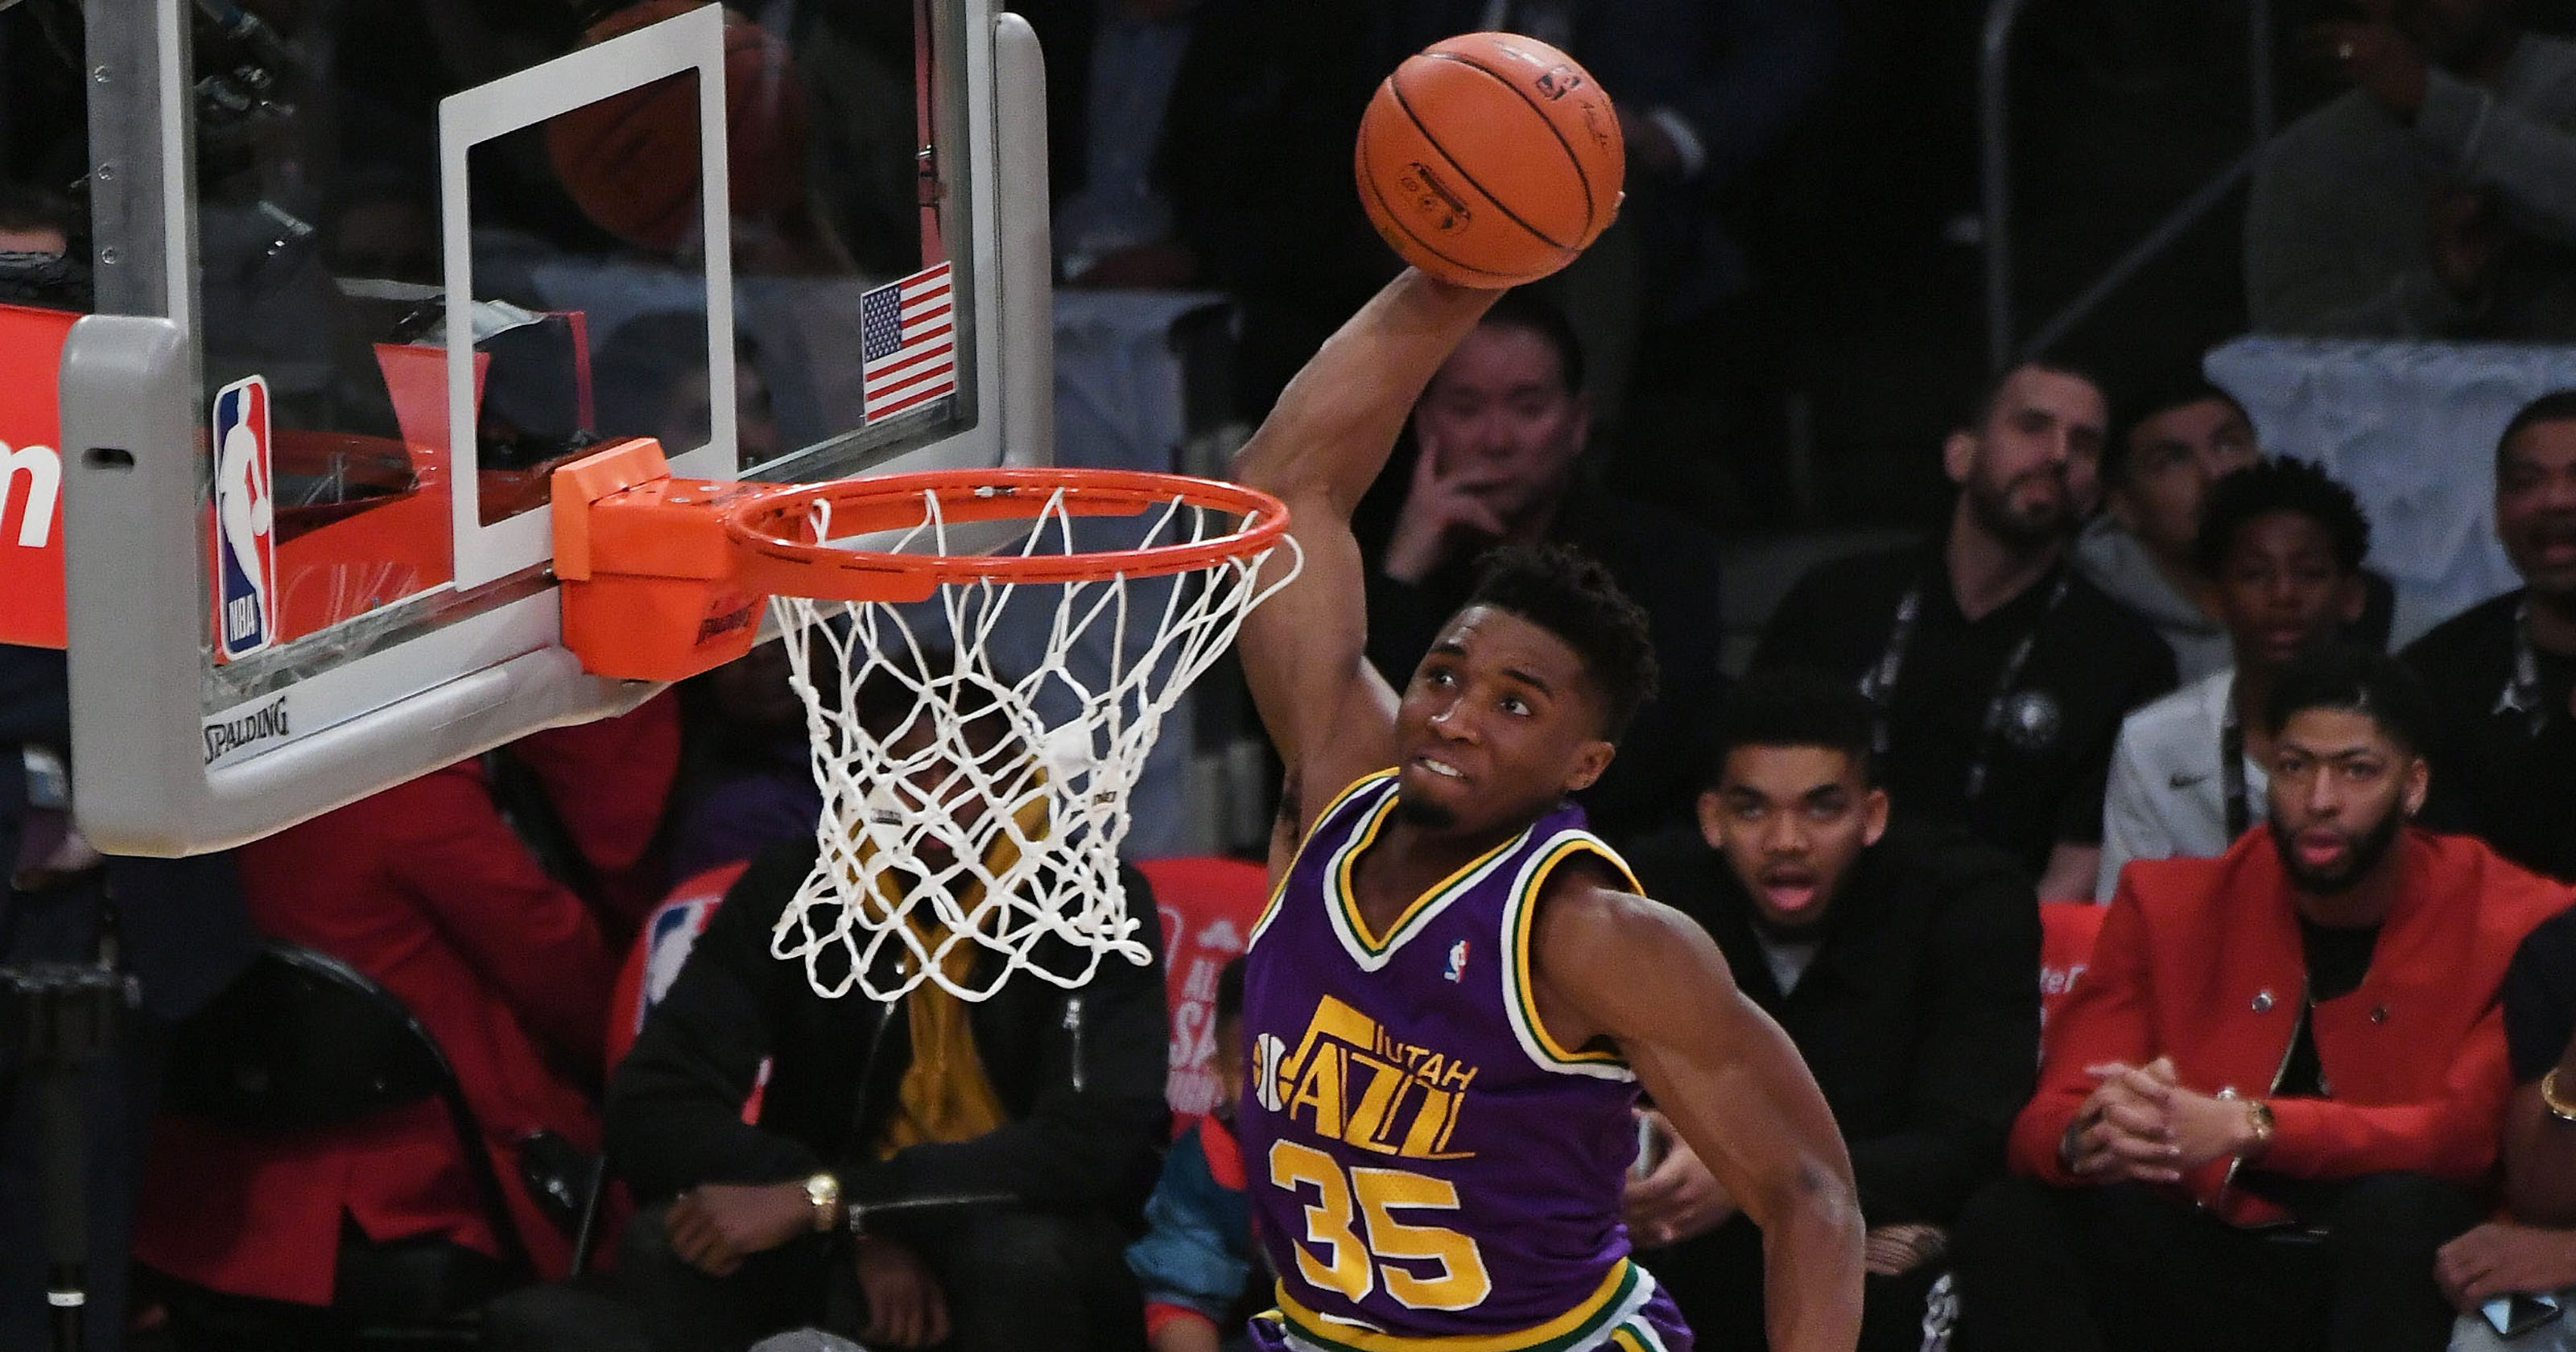 81e788997 All-Star dunk contest  Utah s Donovan Mitchell wins with nod to Vince Carter